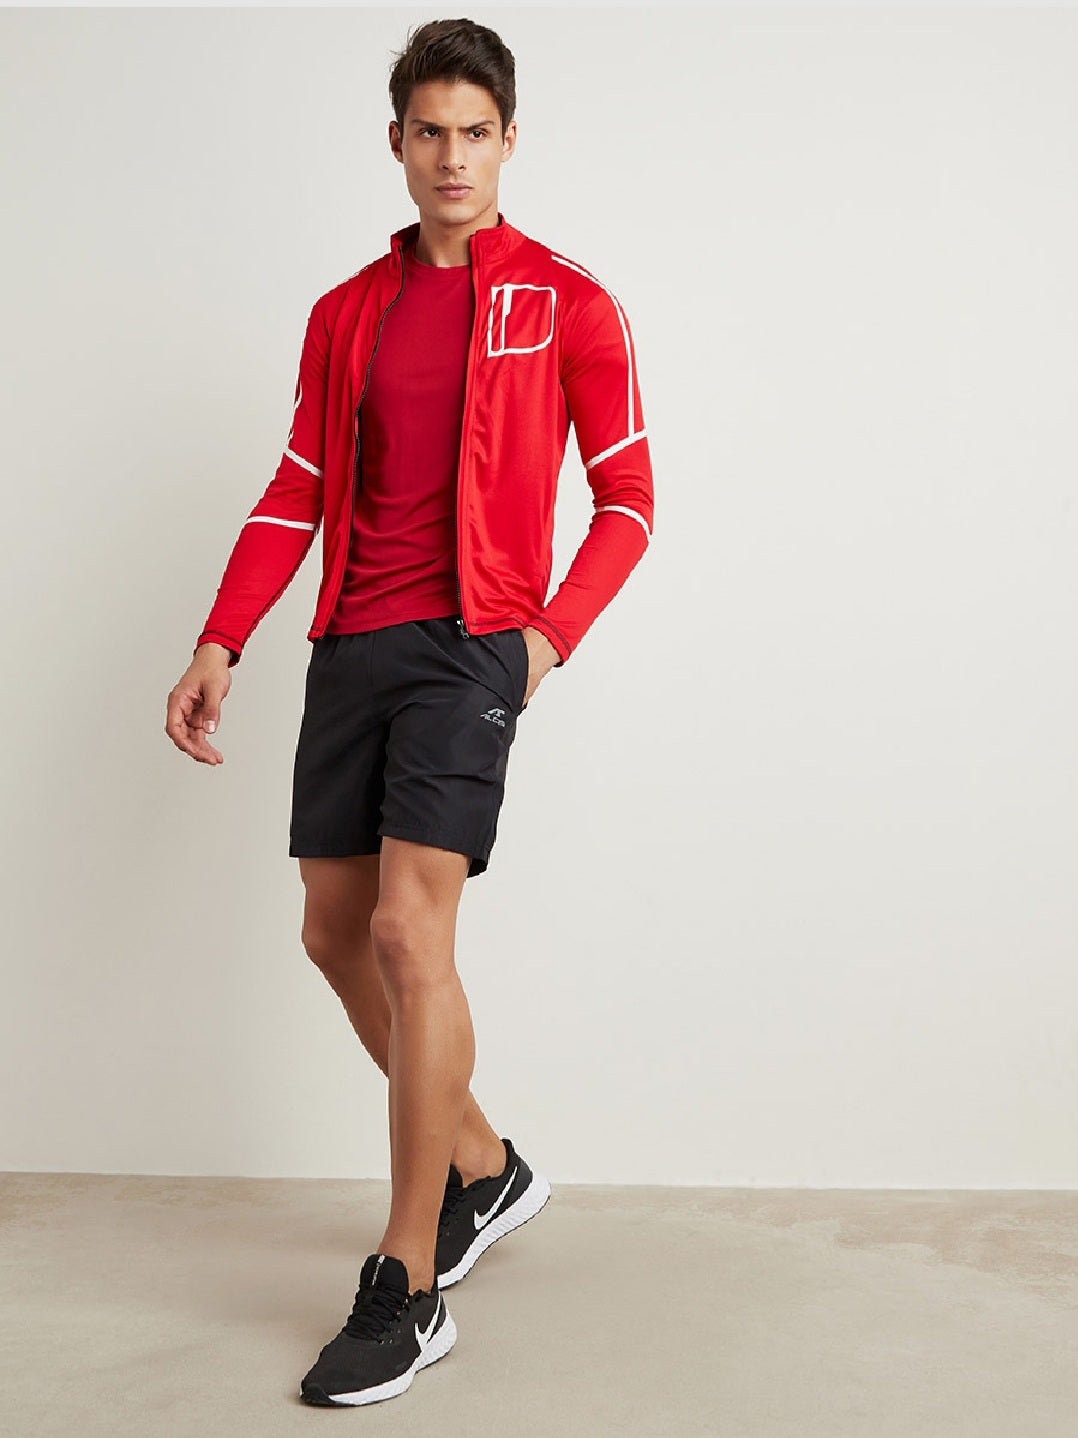 Fitkin Men Red & White Printed Sporty Jacket